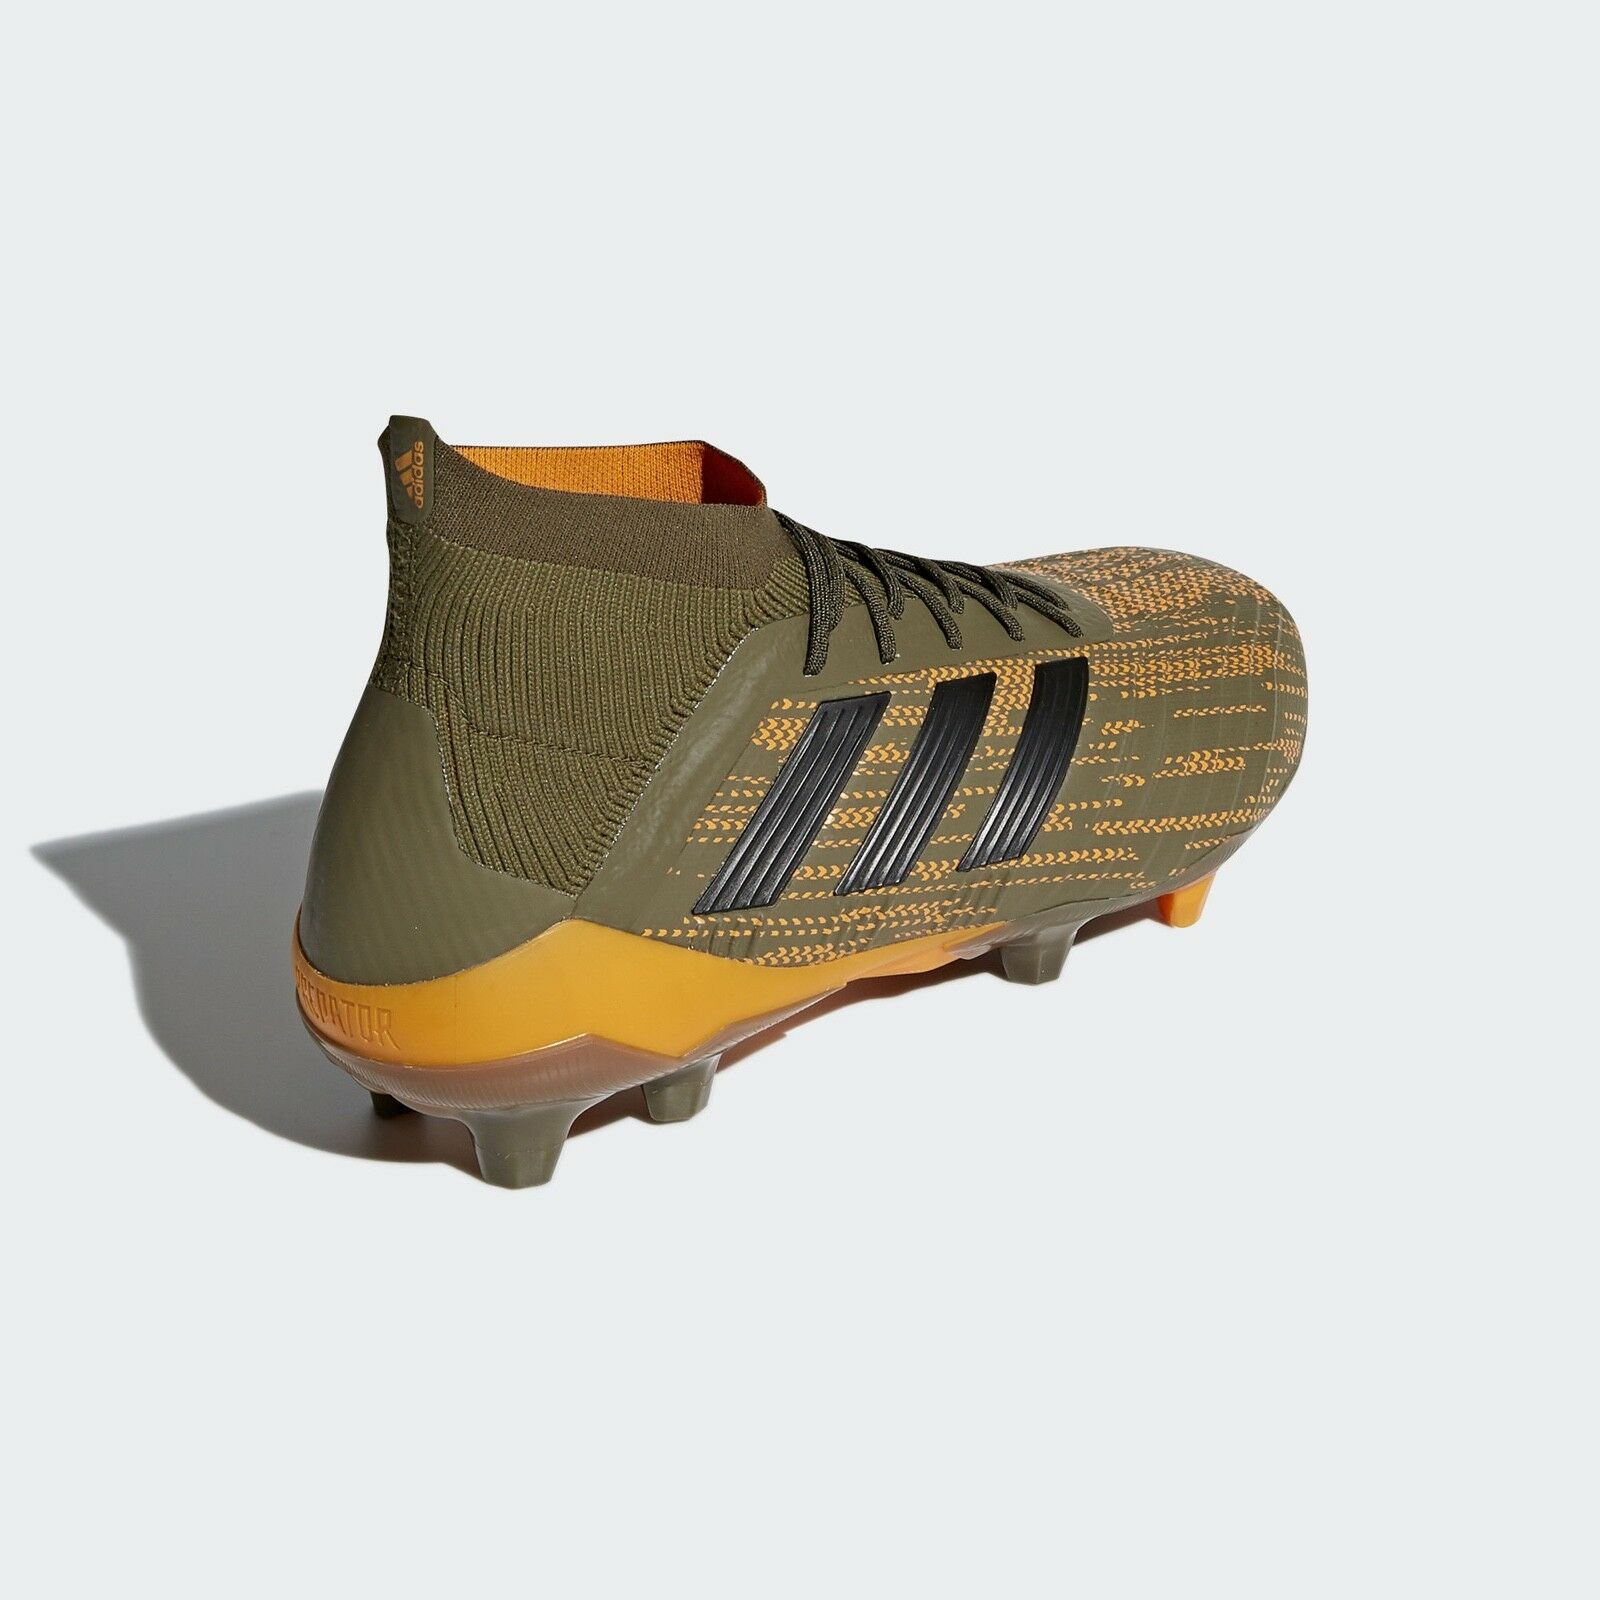 watch 2c482 d3000 adidas Predator 18.1 FG Soccer Cleat Lone Hunter Pack CM7412 Size 8 for  sale online  eBay